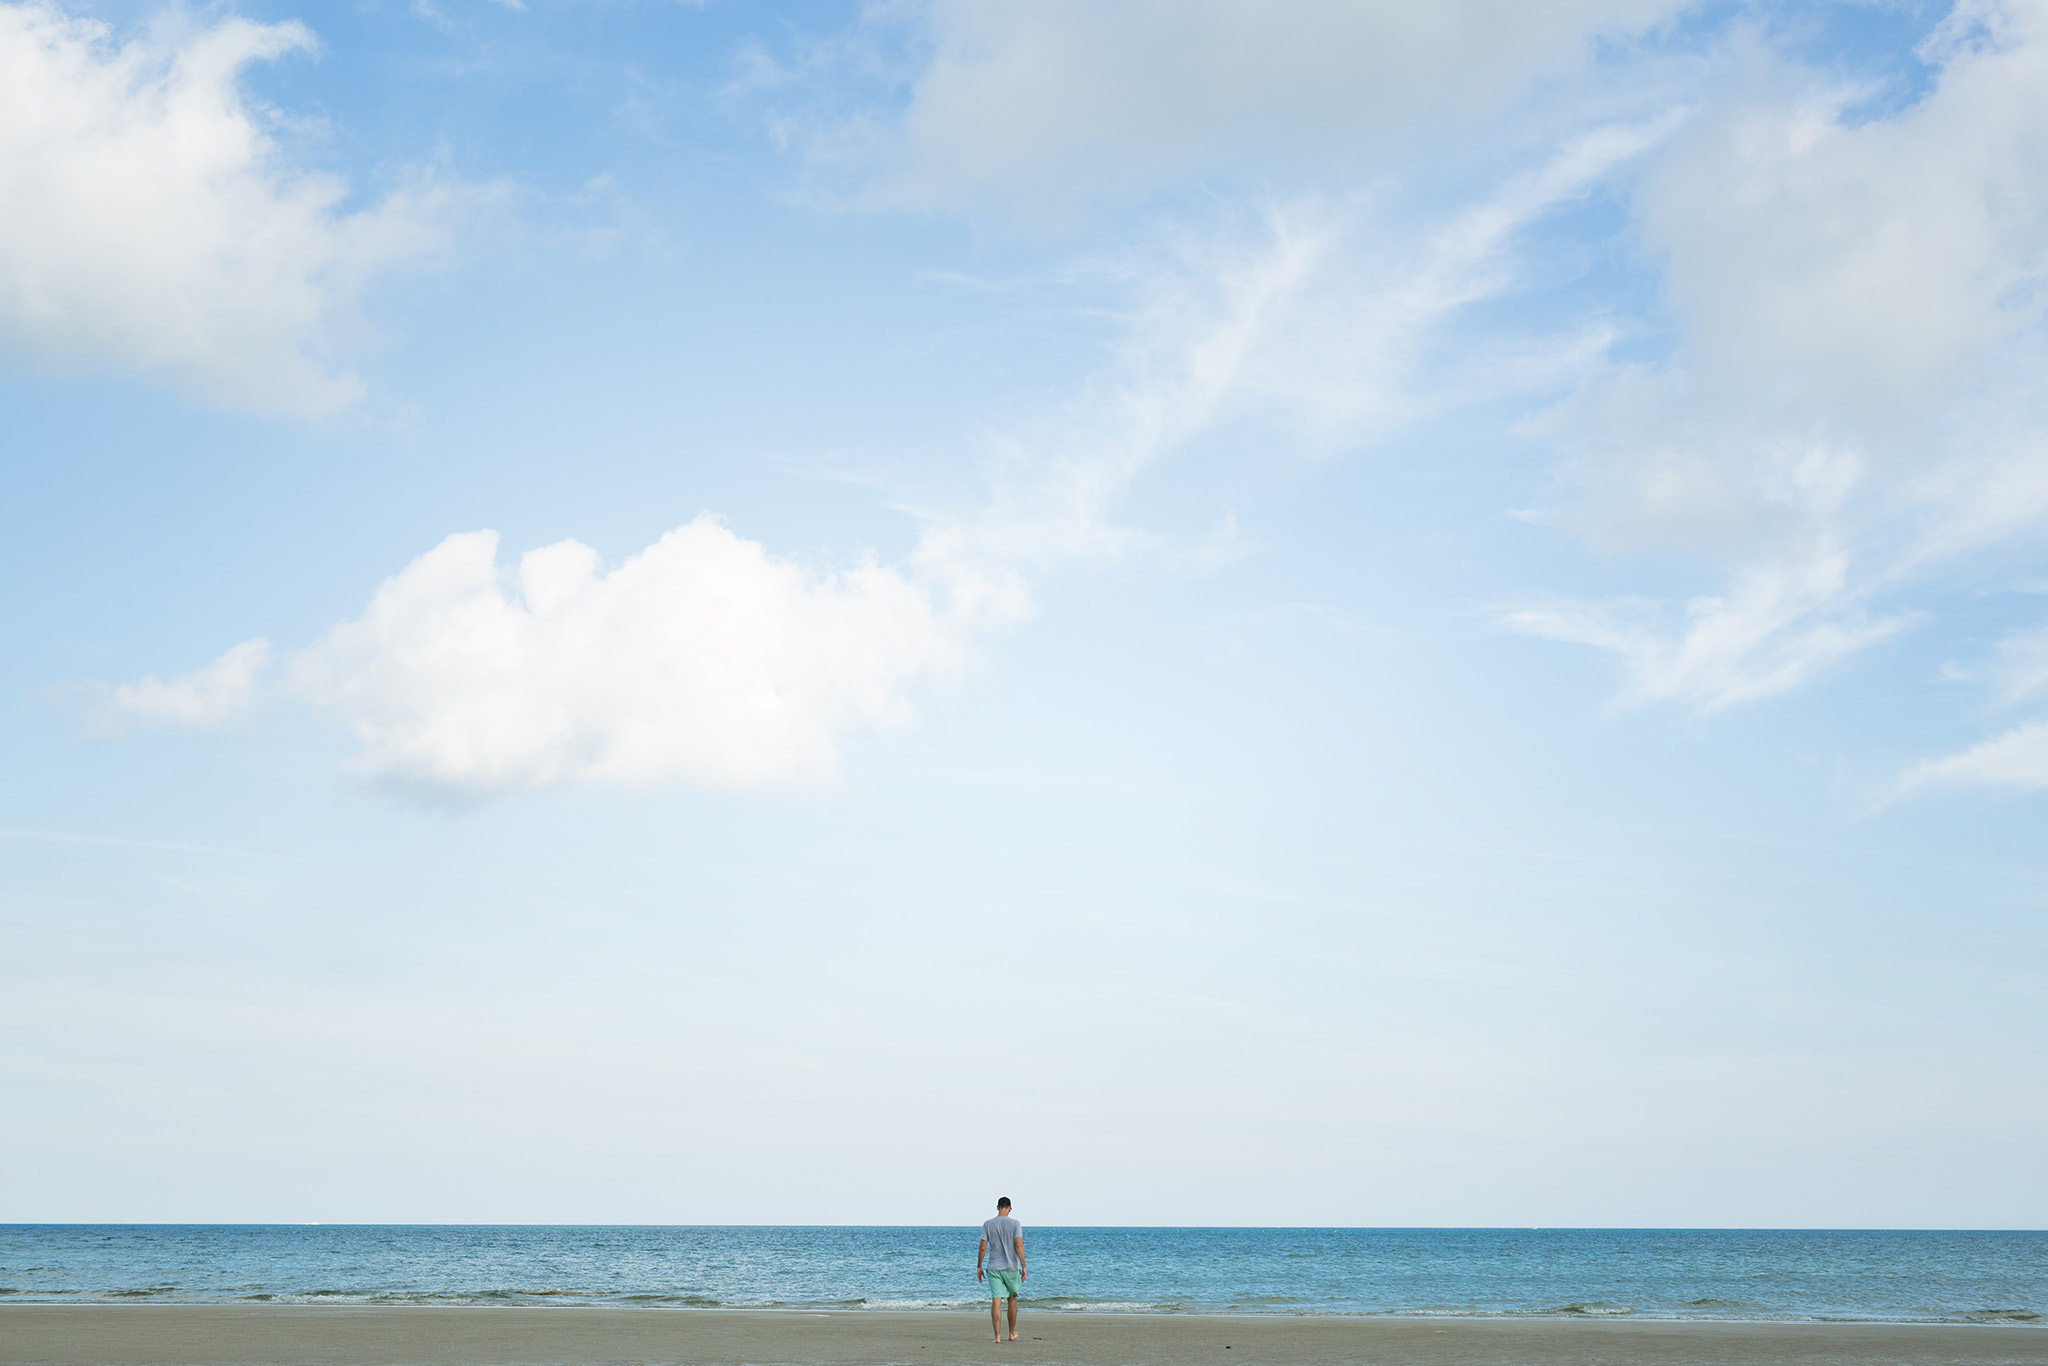 """August 25: """"The cure for anything is salt water: sweat, tears or the sea."""" -Isak Dinesen"""